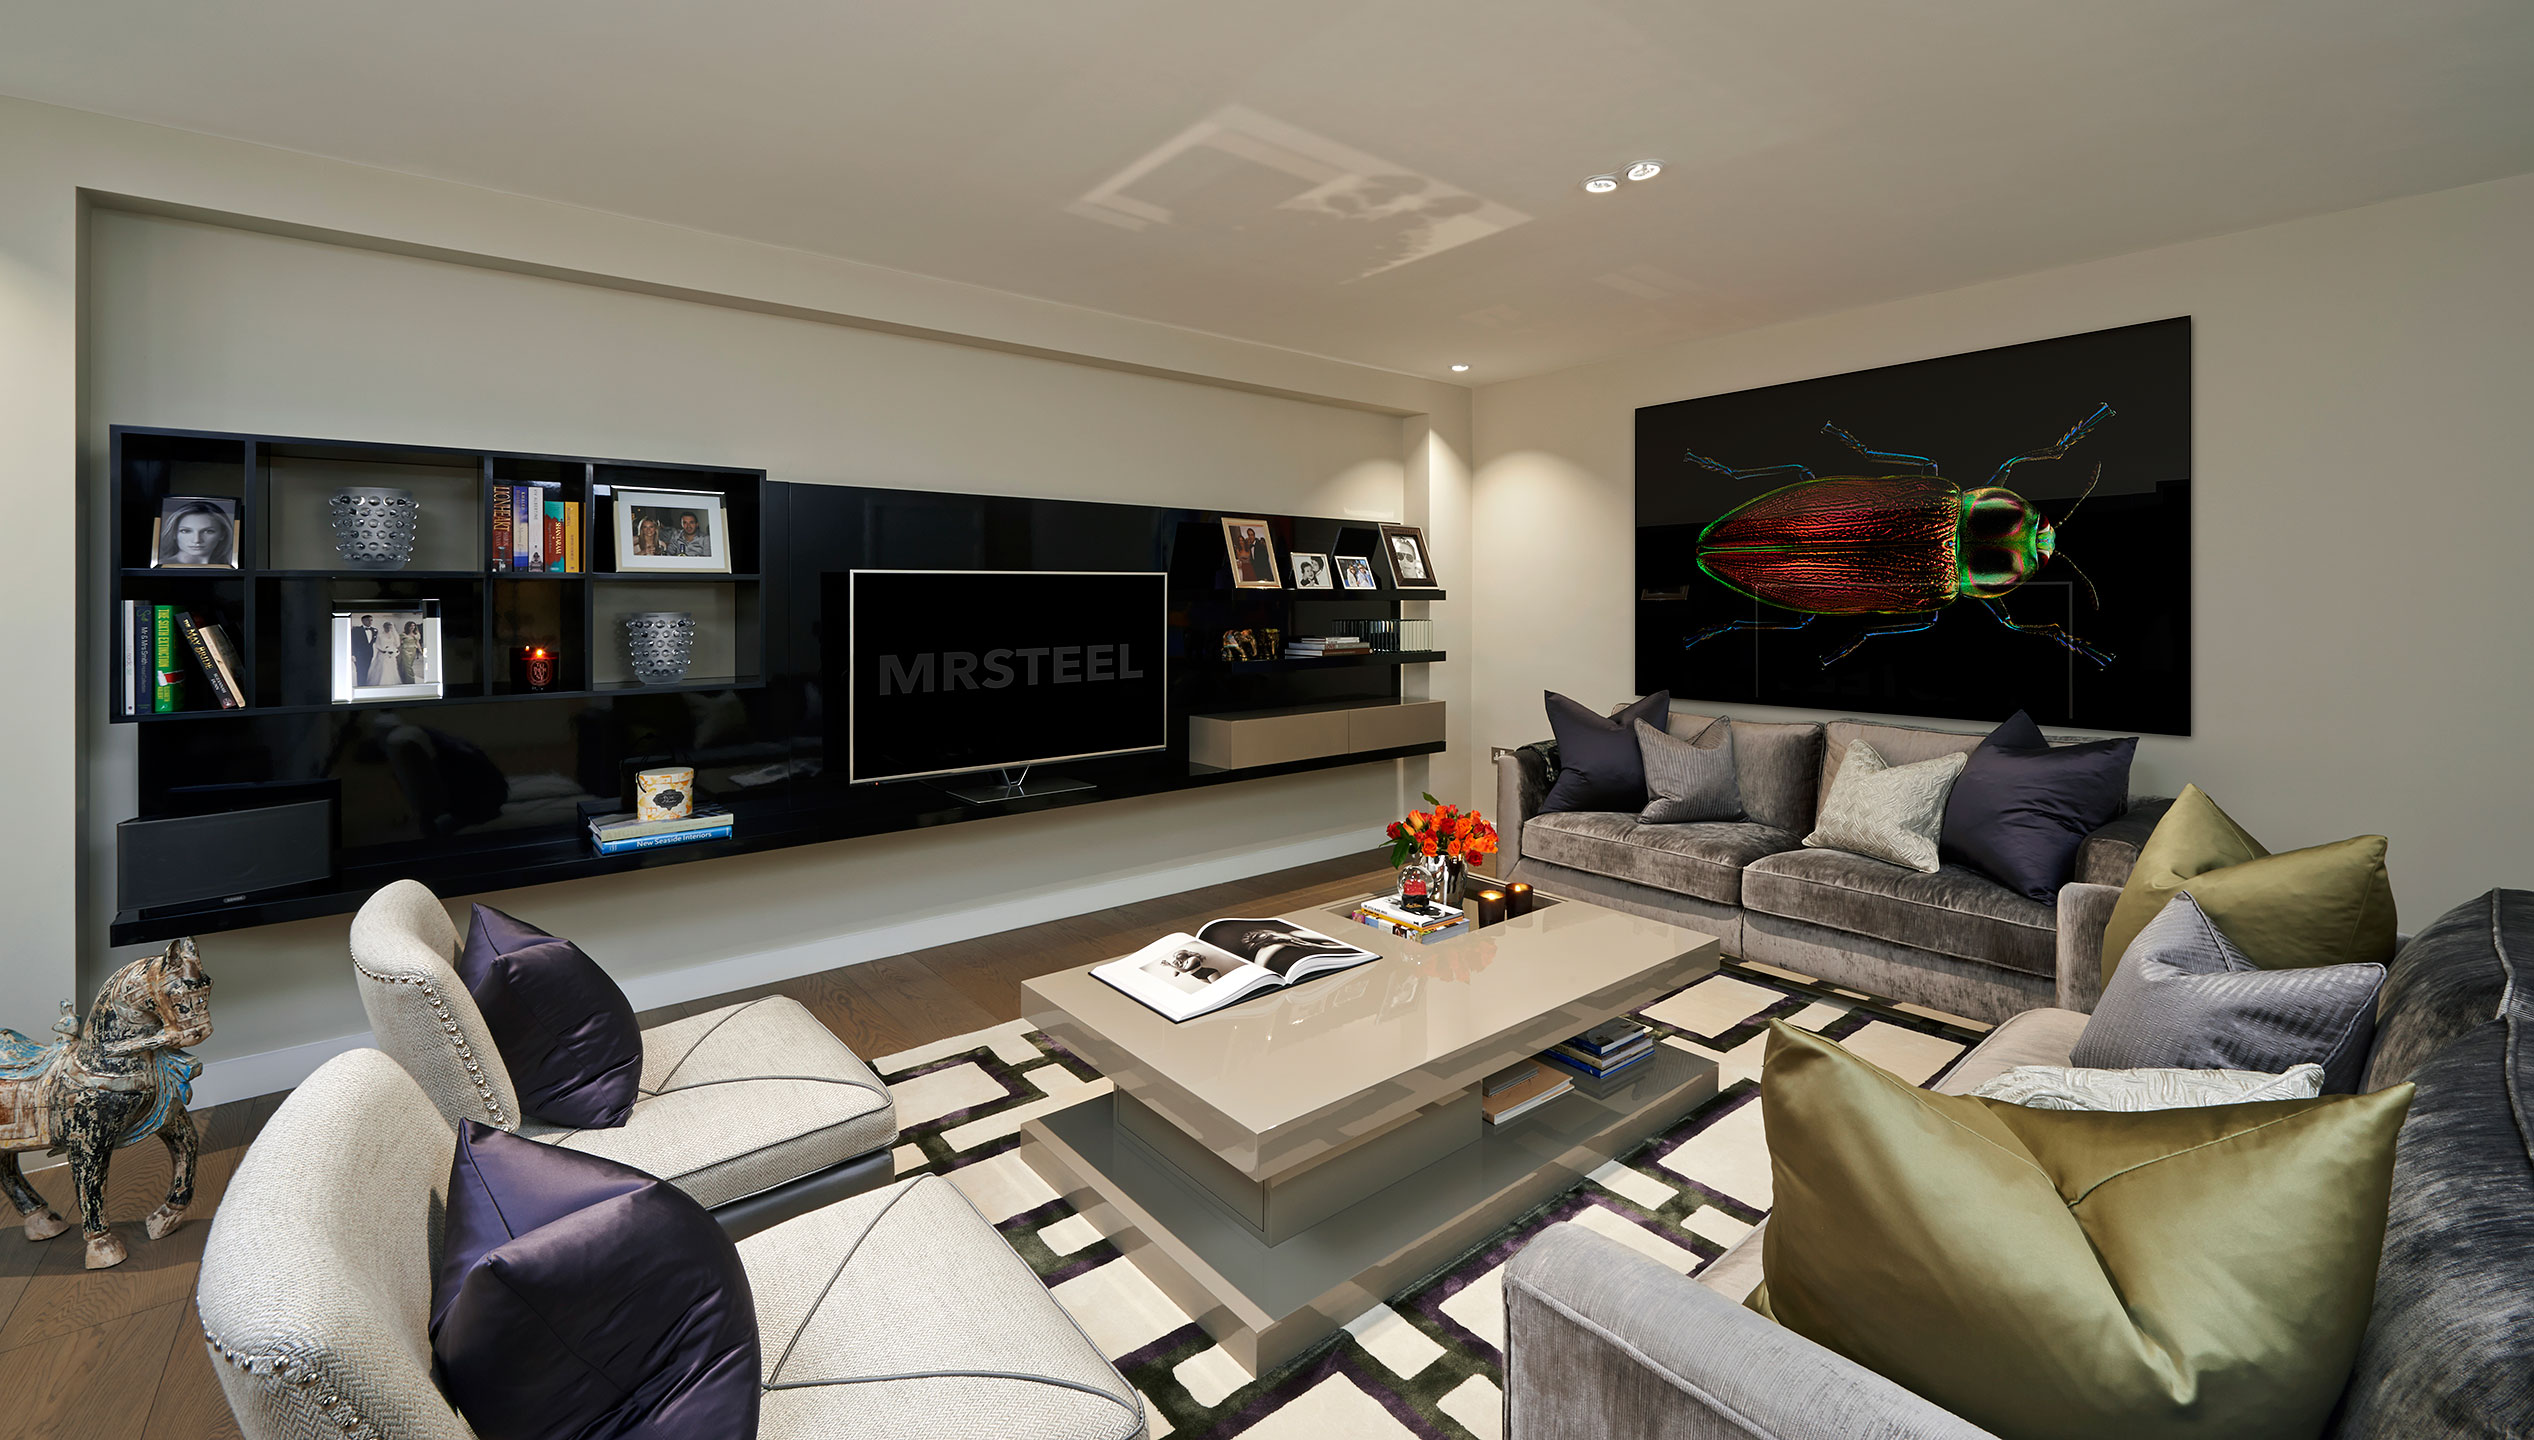 photograph professional interior photographer patrick steel living room interior